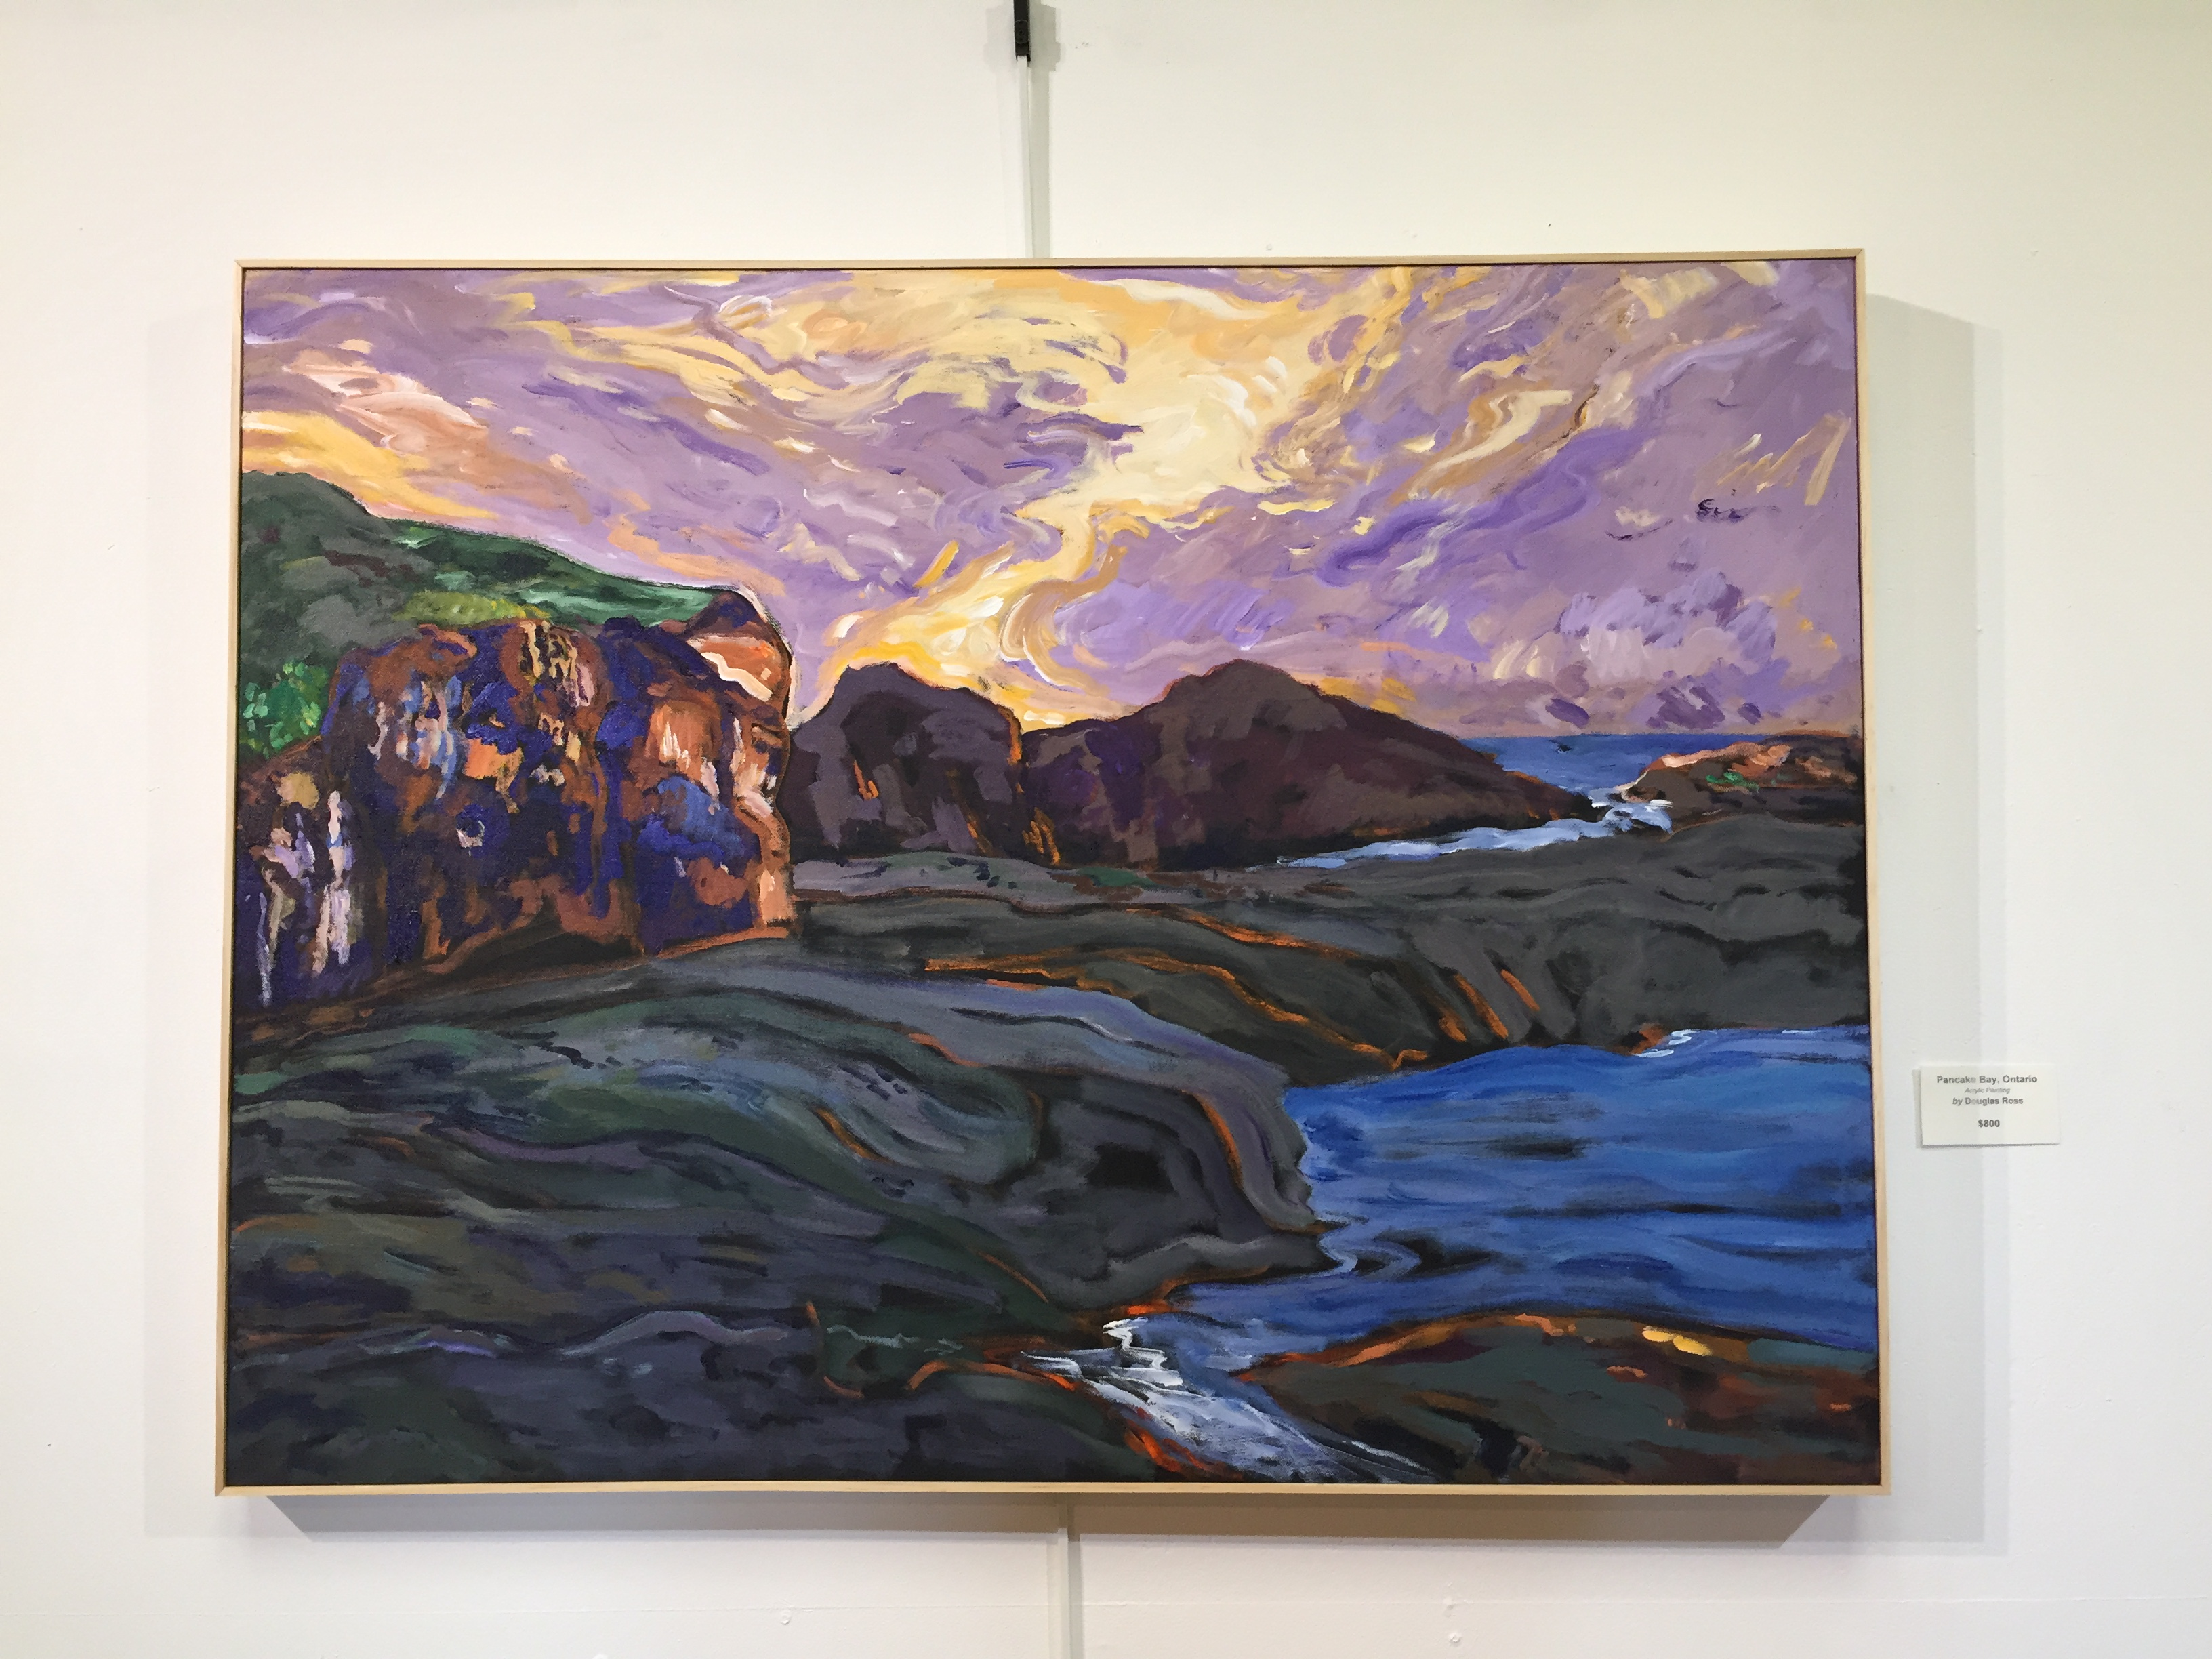 """Pancake Bay, Ontario"" by Douglas Ross is one of the paintings on exhibit at the Johnson Heritage Post."